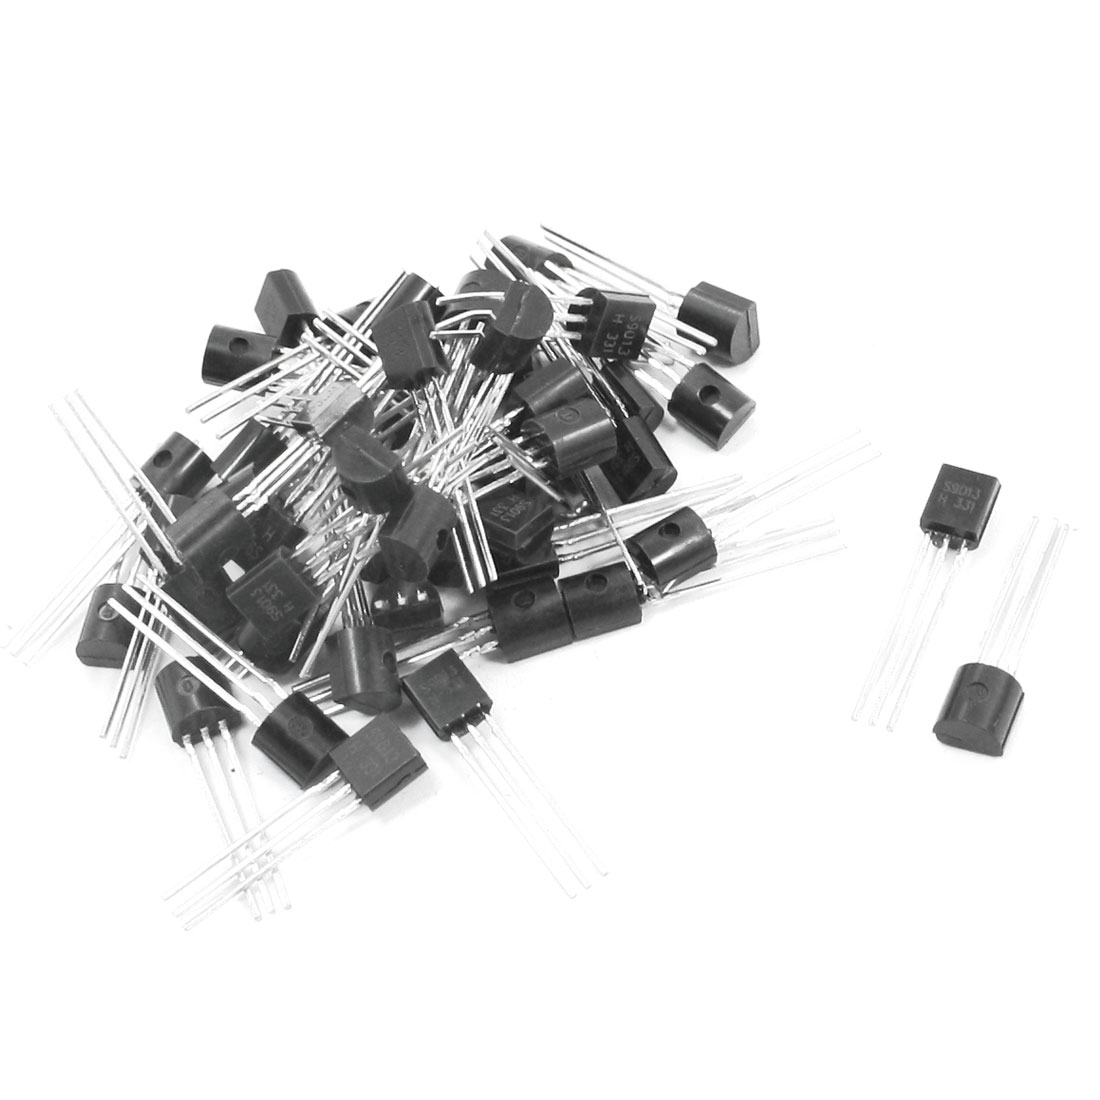 50pcs General Propose S9013 40V 500mA TO-92 Package PNP Transistor